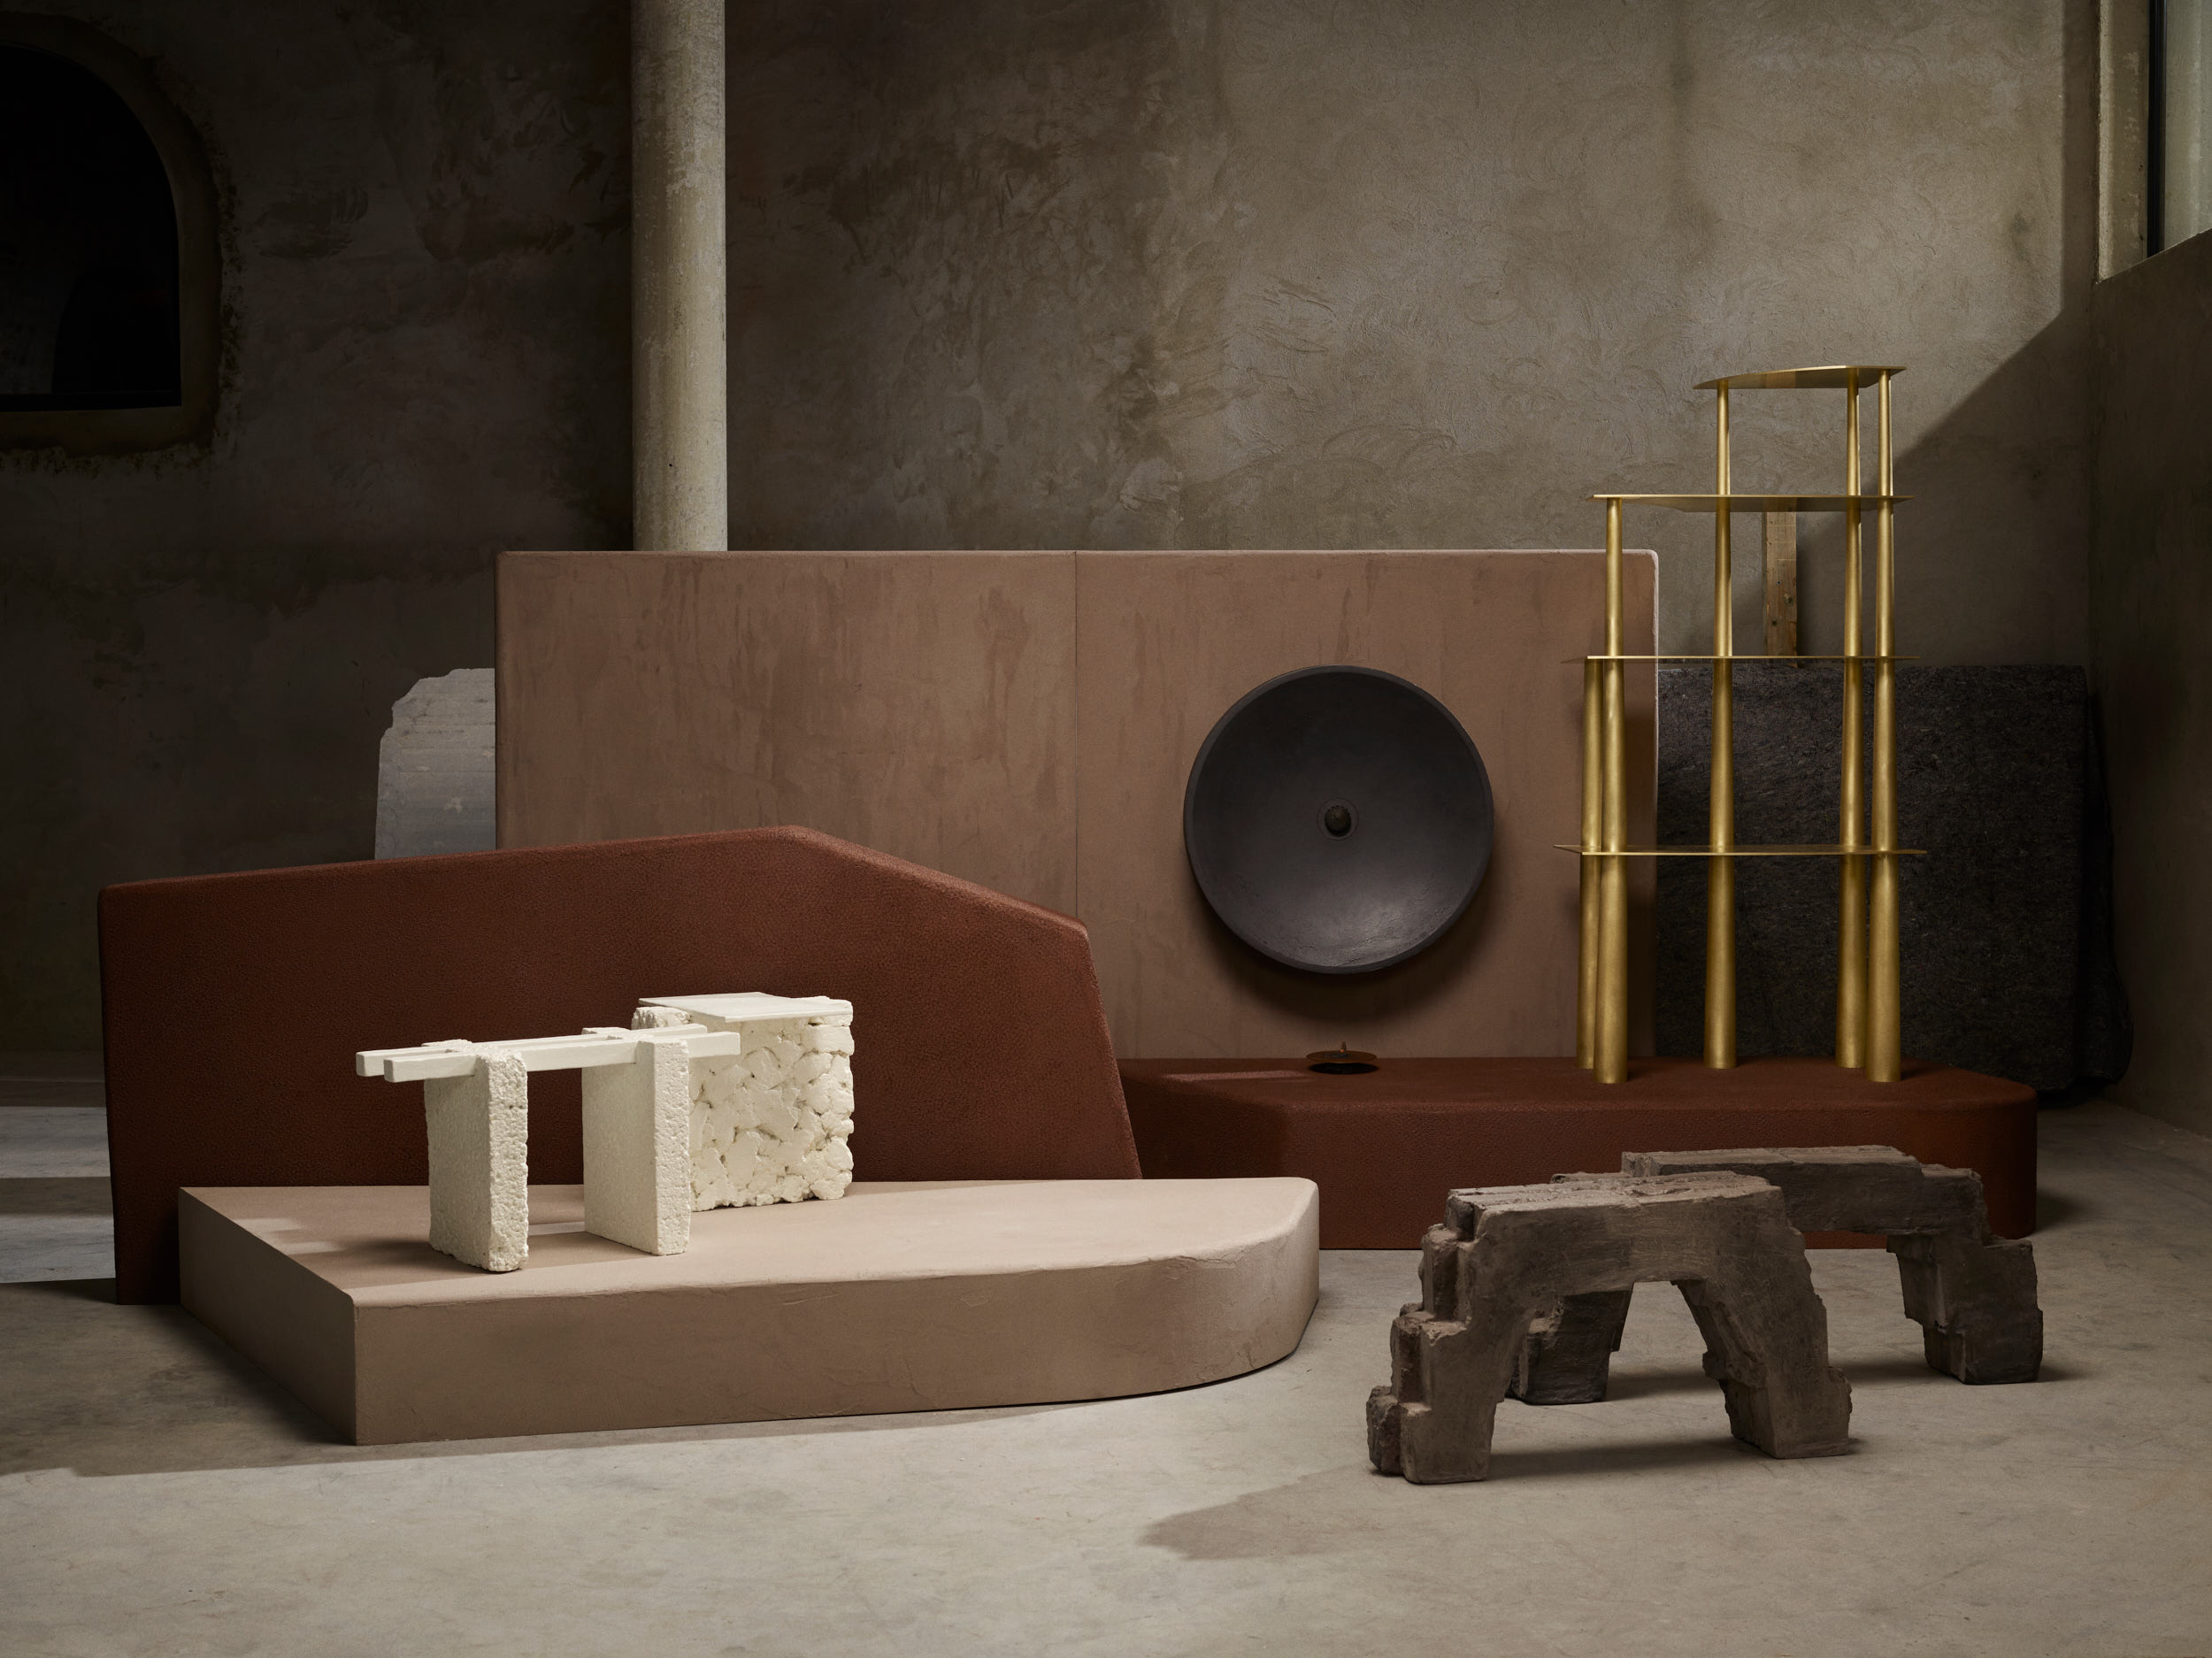 BRUT to Present Bodem at Milan Design Week on Anniversary Magazine